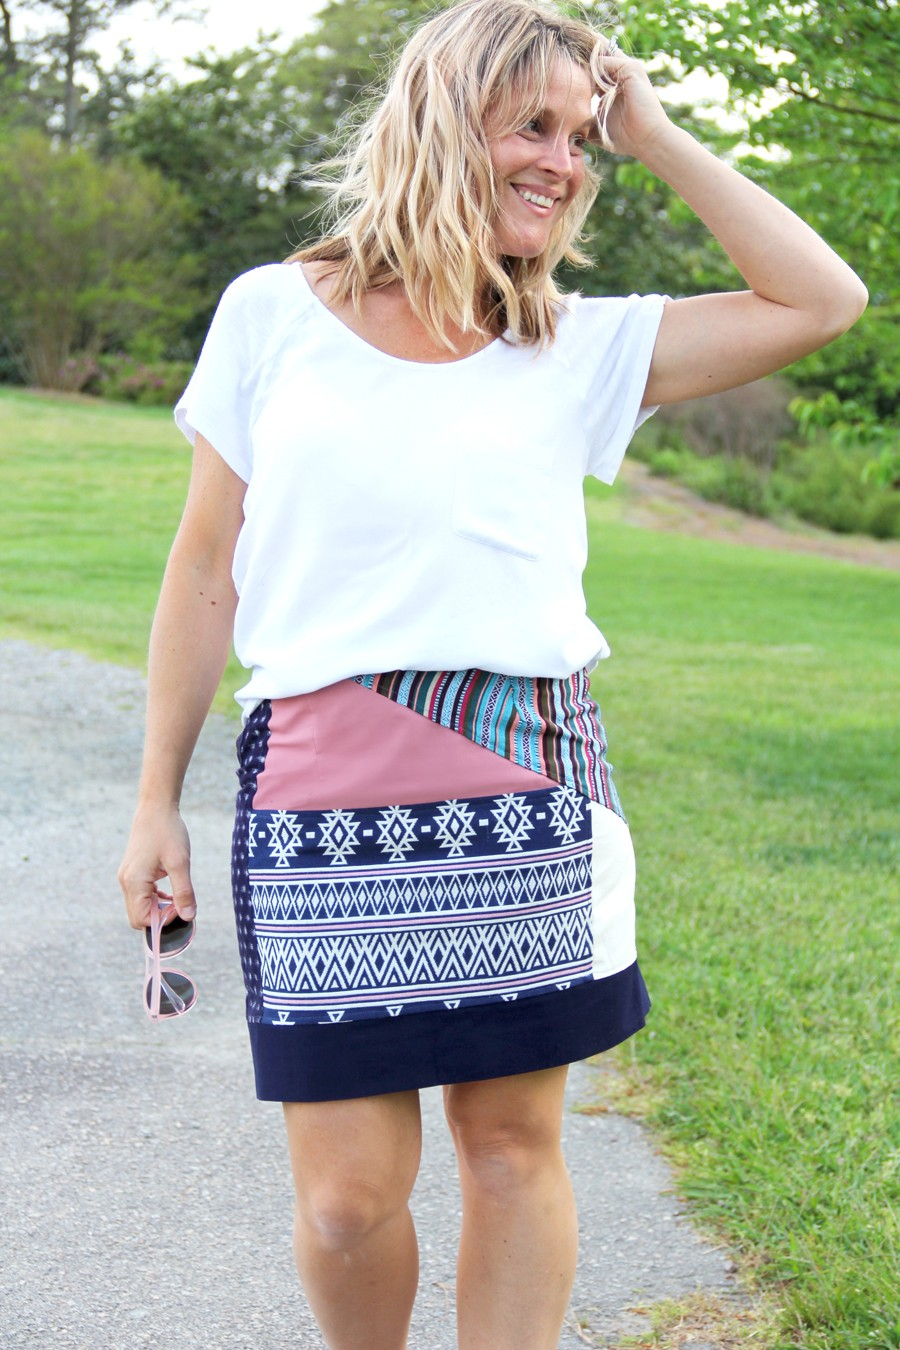 How to make a patchwork skirt || Bohemian Chic Summer Style on a DIY budget.